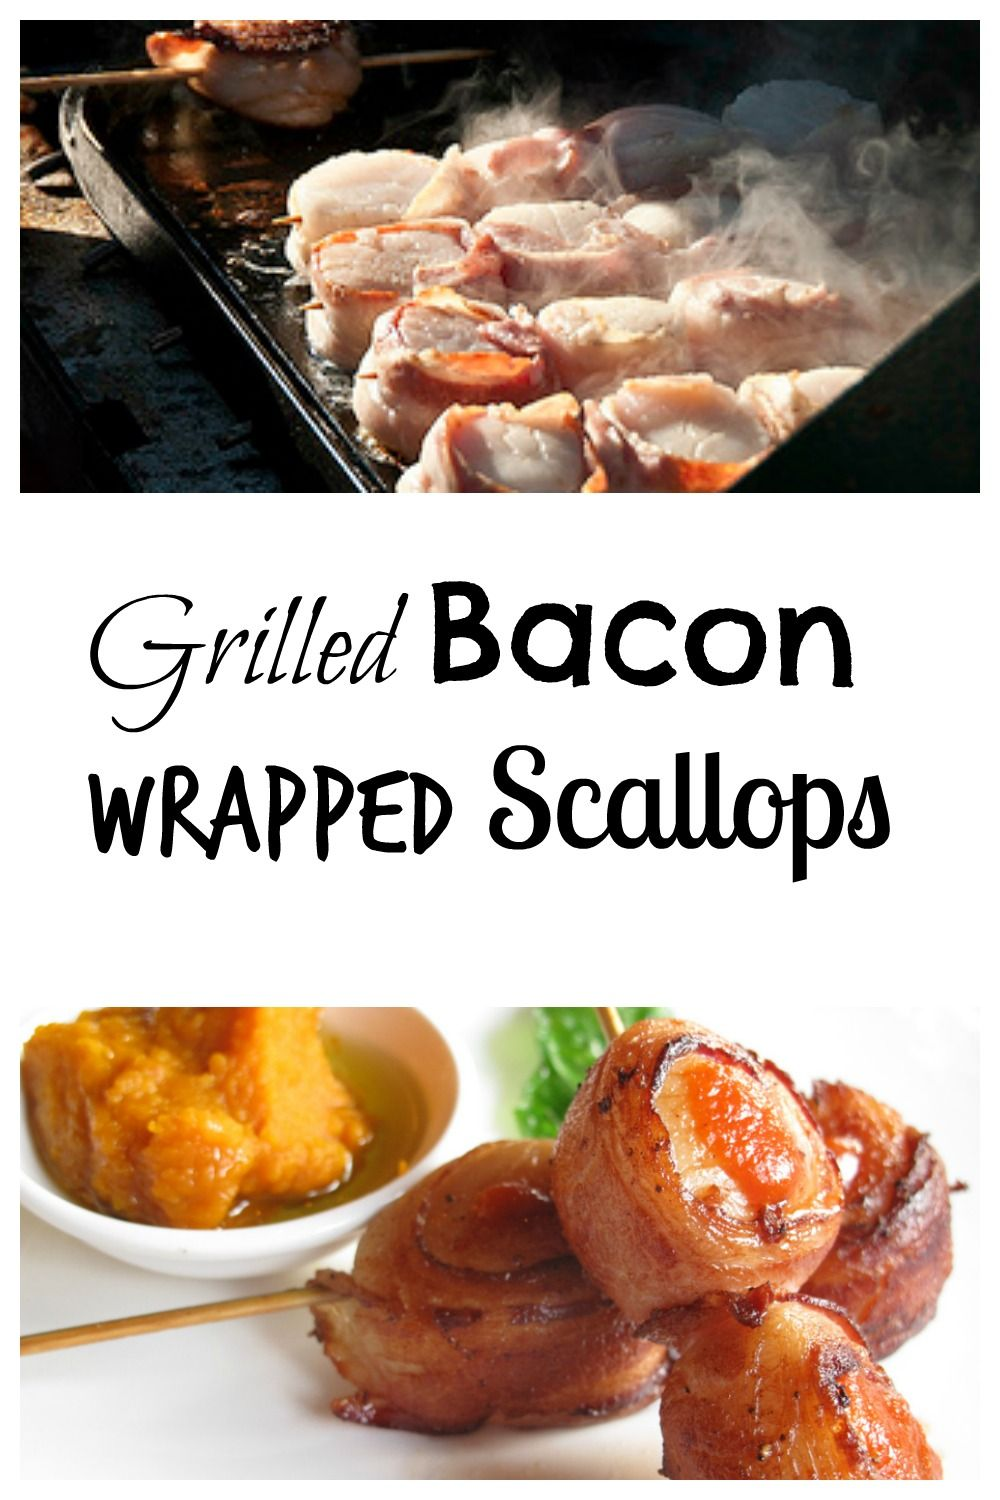 Grilled Bacon Wrapped Scallops   Grilled scallops, Bacon and Grilling